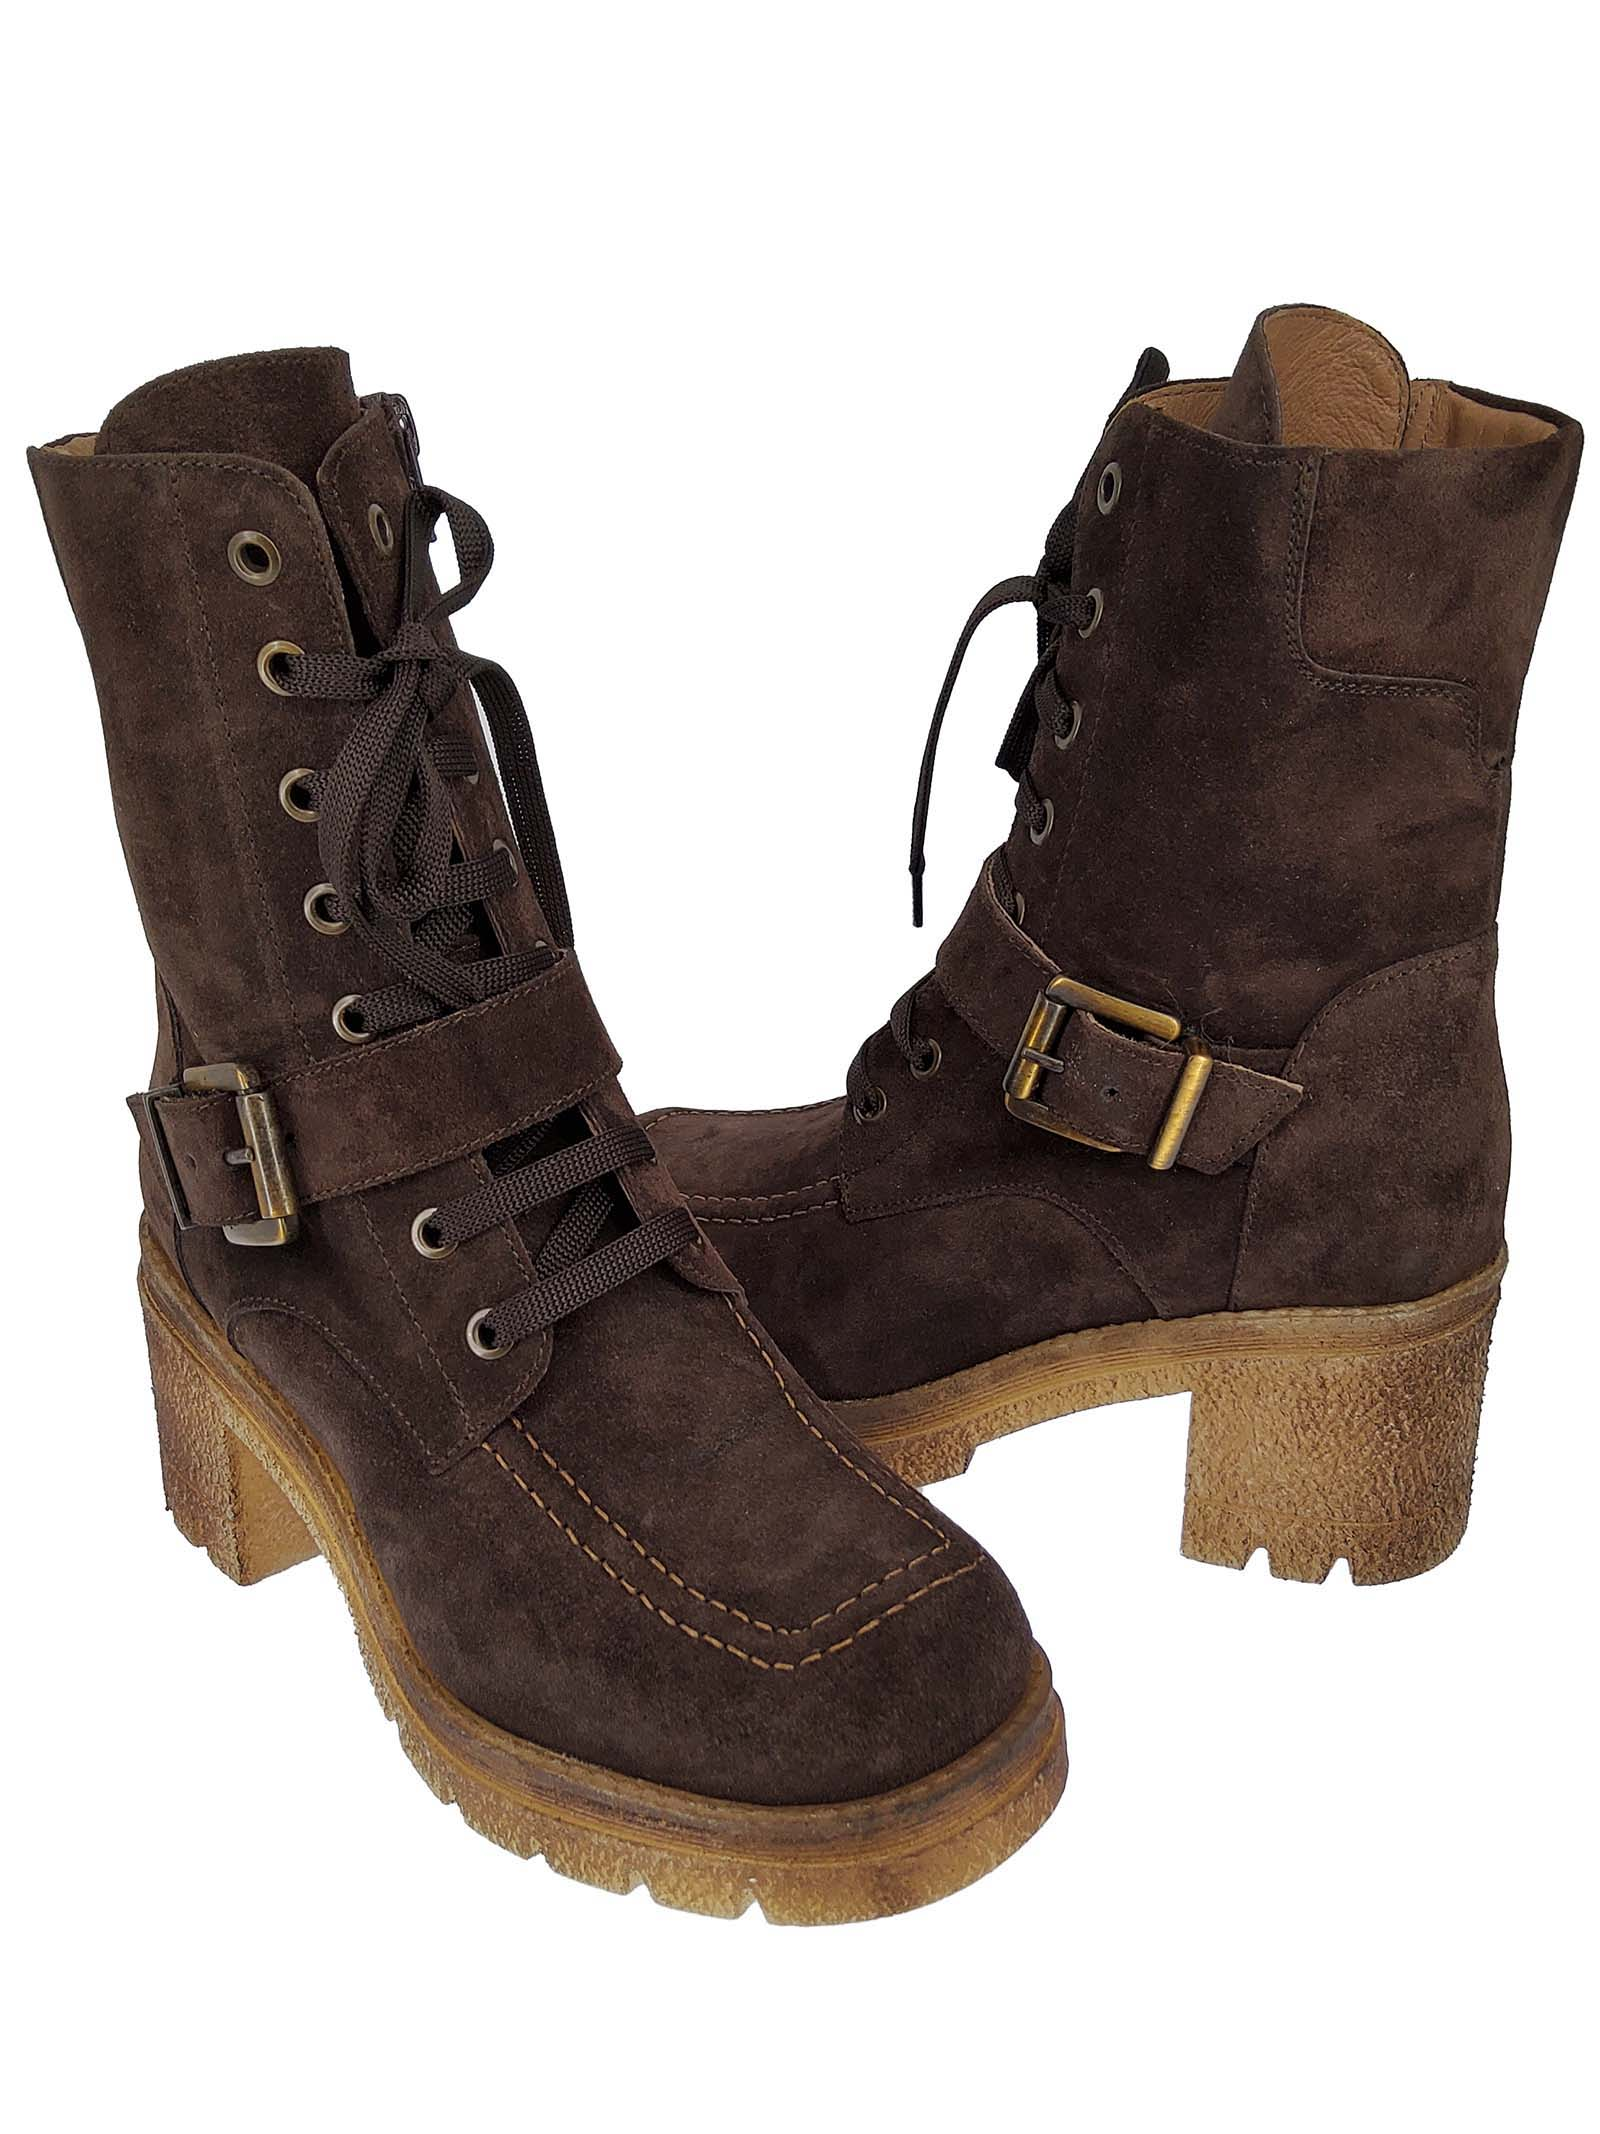 Women's Shoes Lace-up Combat Ankle Boots In Brown Suede with Buckle and Side Zip and Para Sole Spatarella | Ankle Boots | AT31013